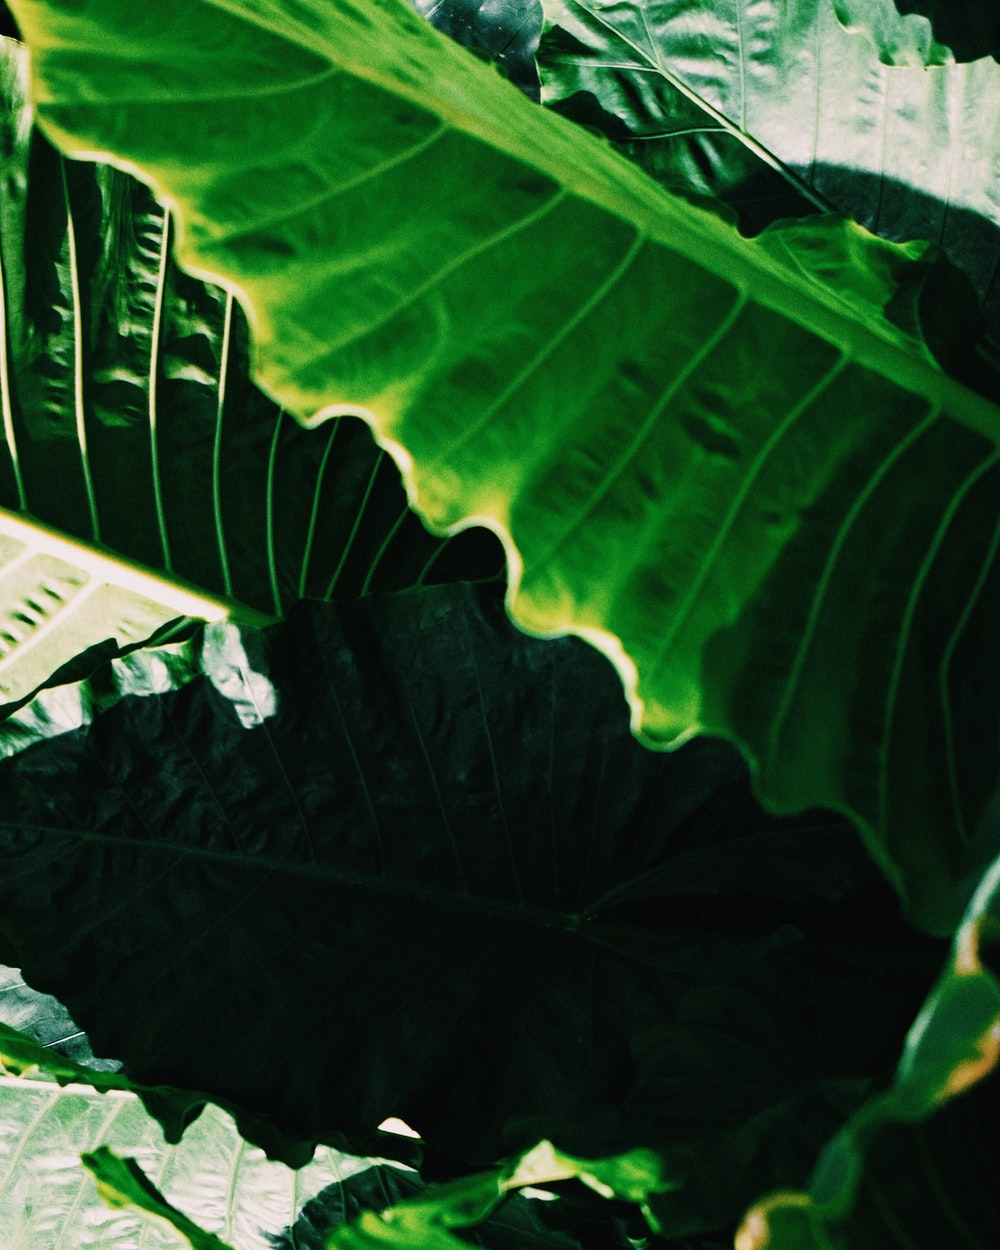 green banana leaf during daytime